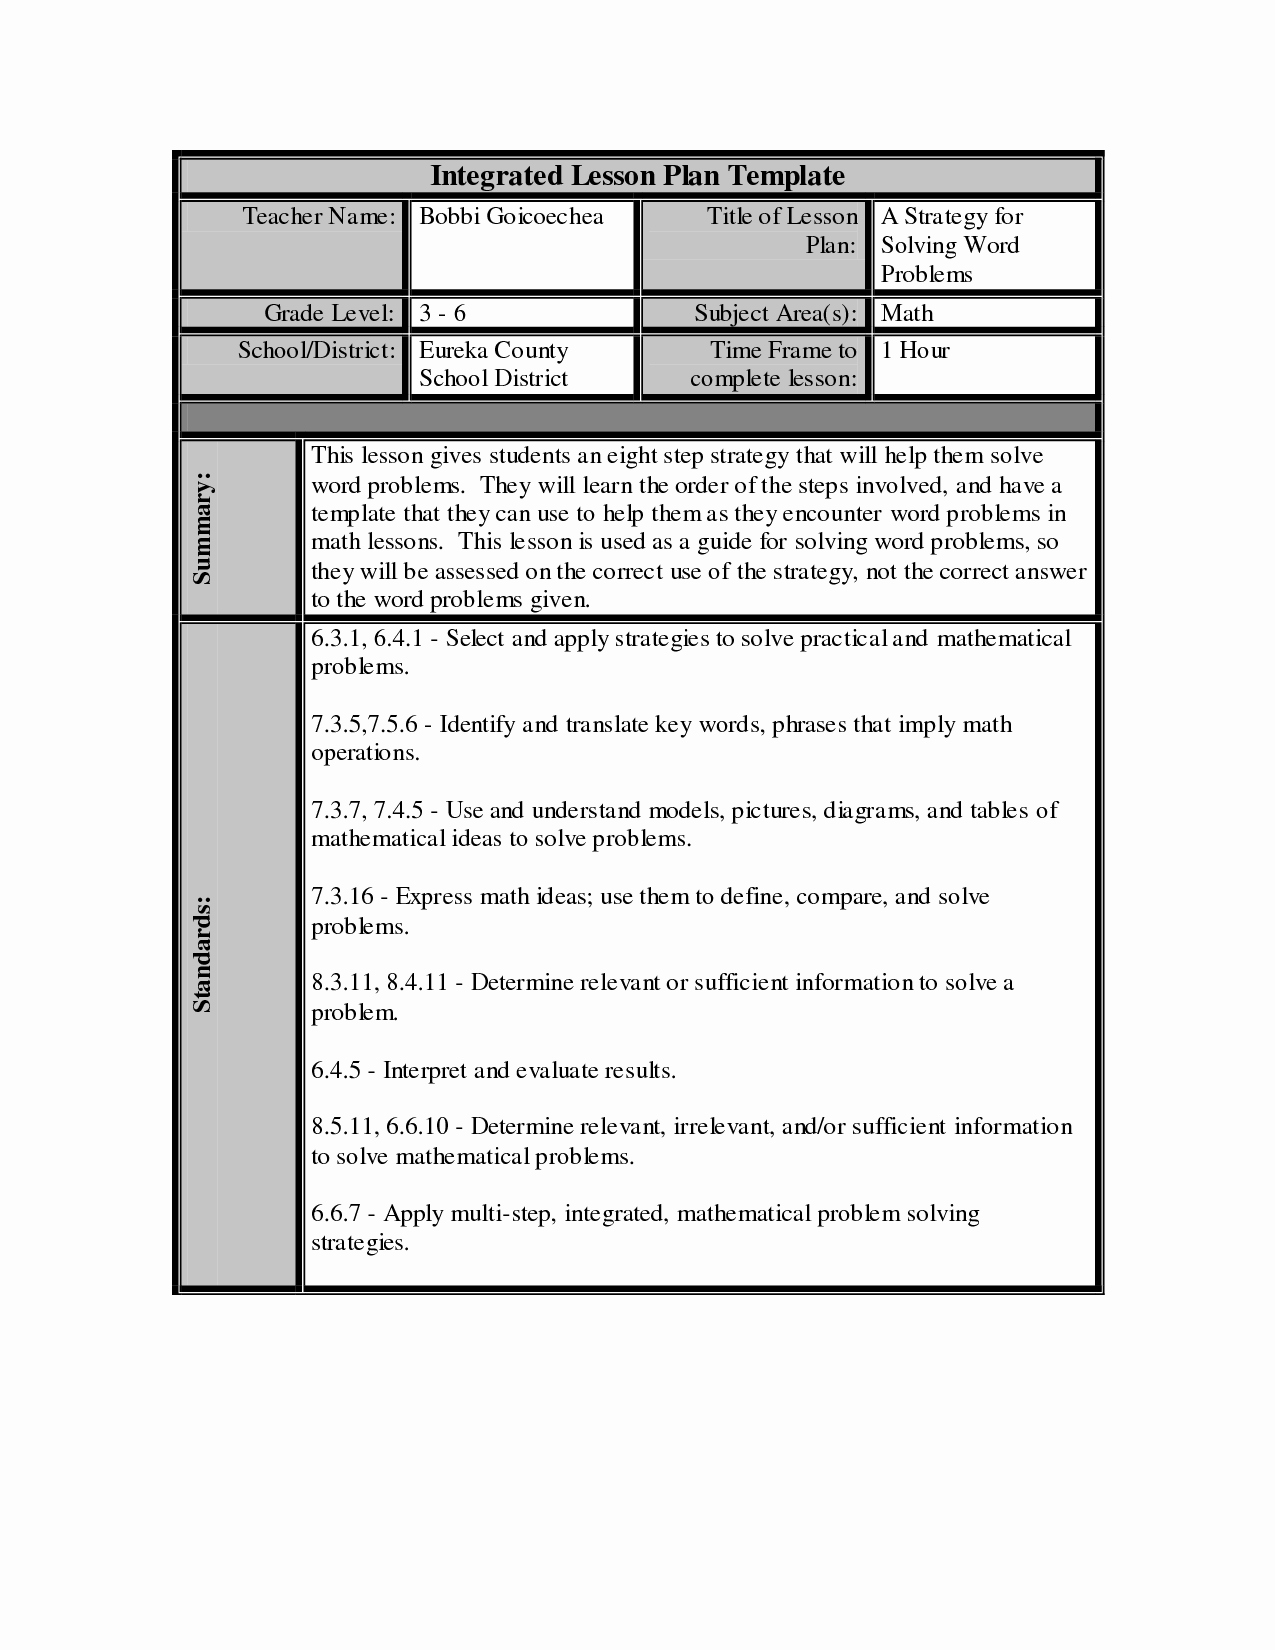 Daily Lesson Plan Template Word Elegant Best S Of Math Lesson Plan Template Math Lesson